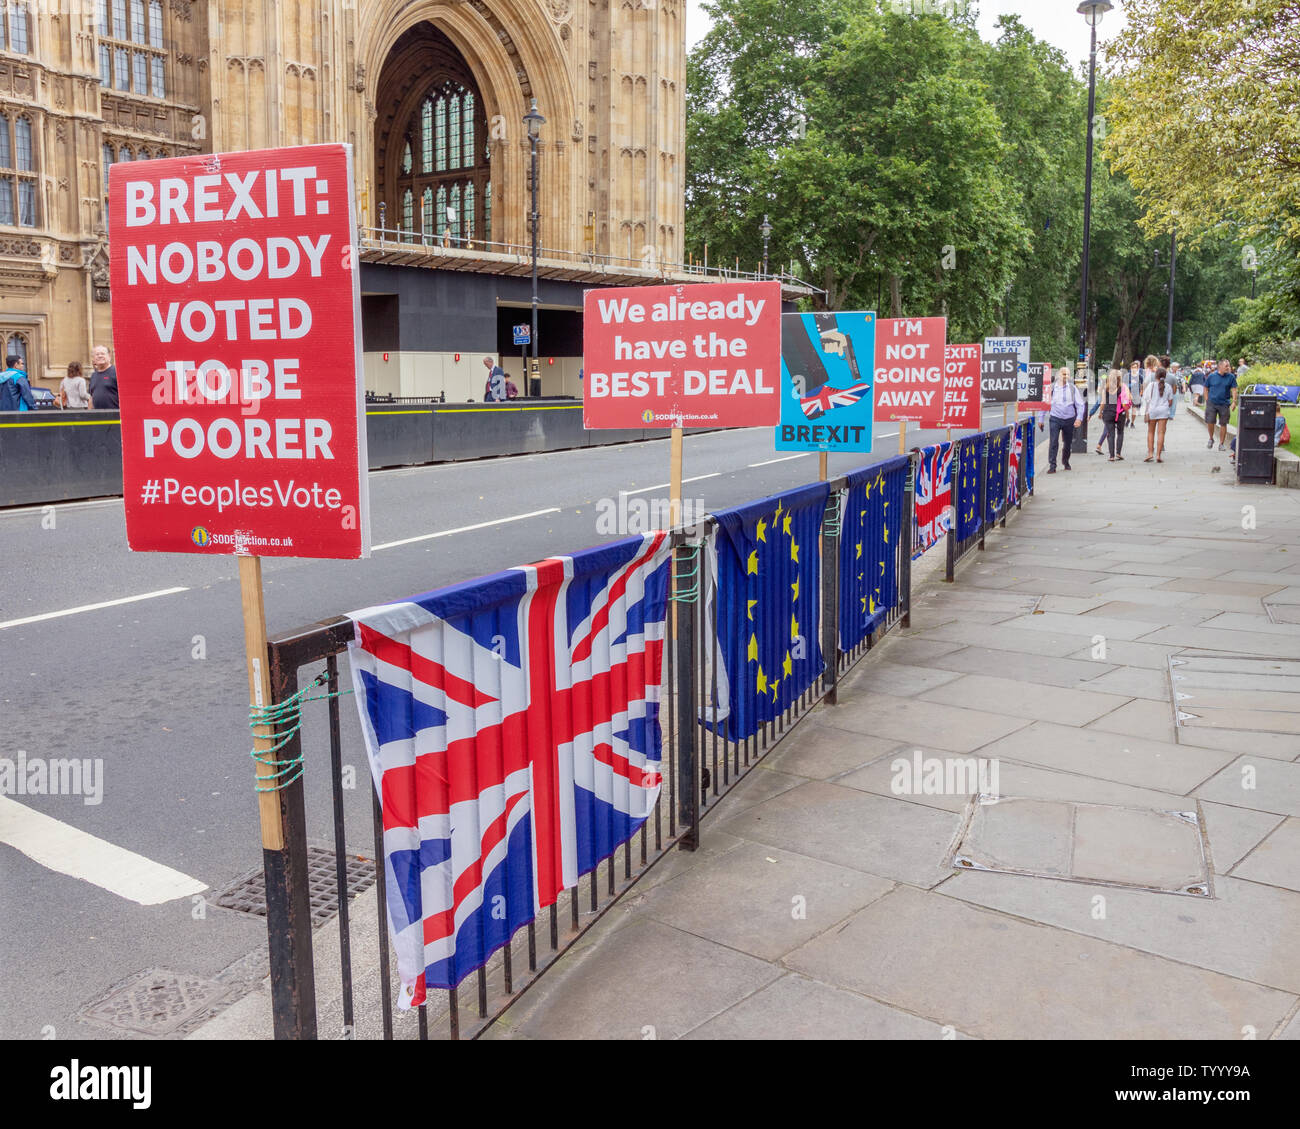 London / UK - June 26th 2019 - Pro-EU anti-Brexit signs and European Union / Union Jack flags attached to railings opposite Parliament in Westminster - Stock Image